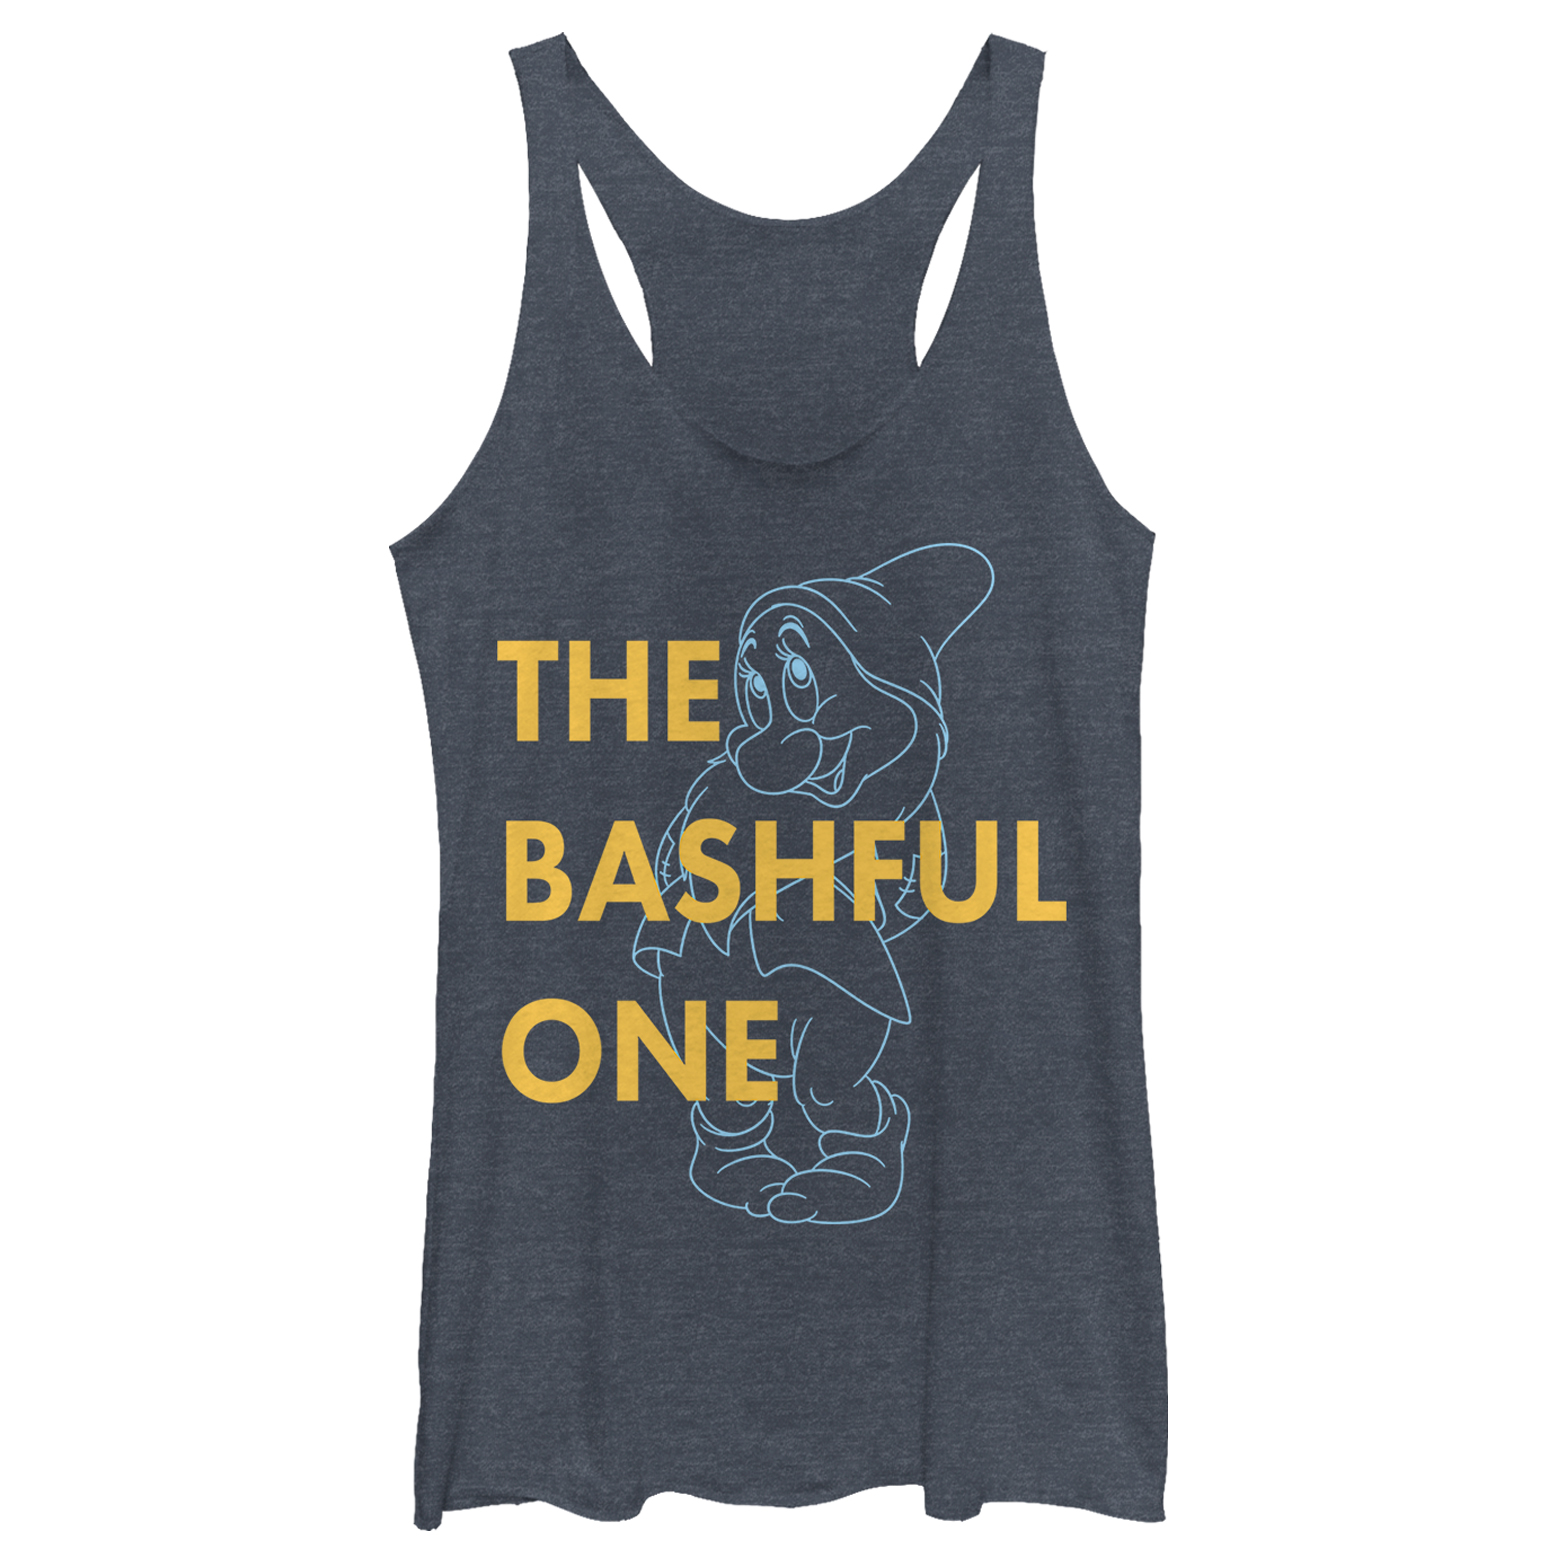 Snow White and the Seven Dwarves Women's Bashful One Racerback Tank Top